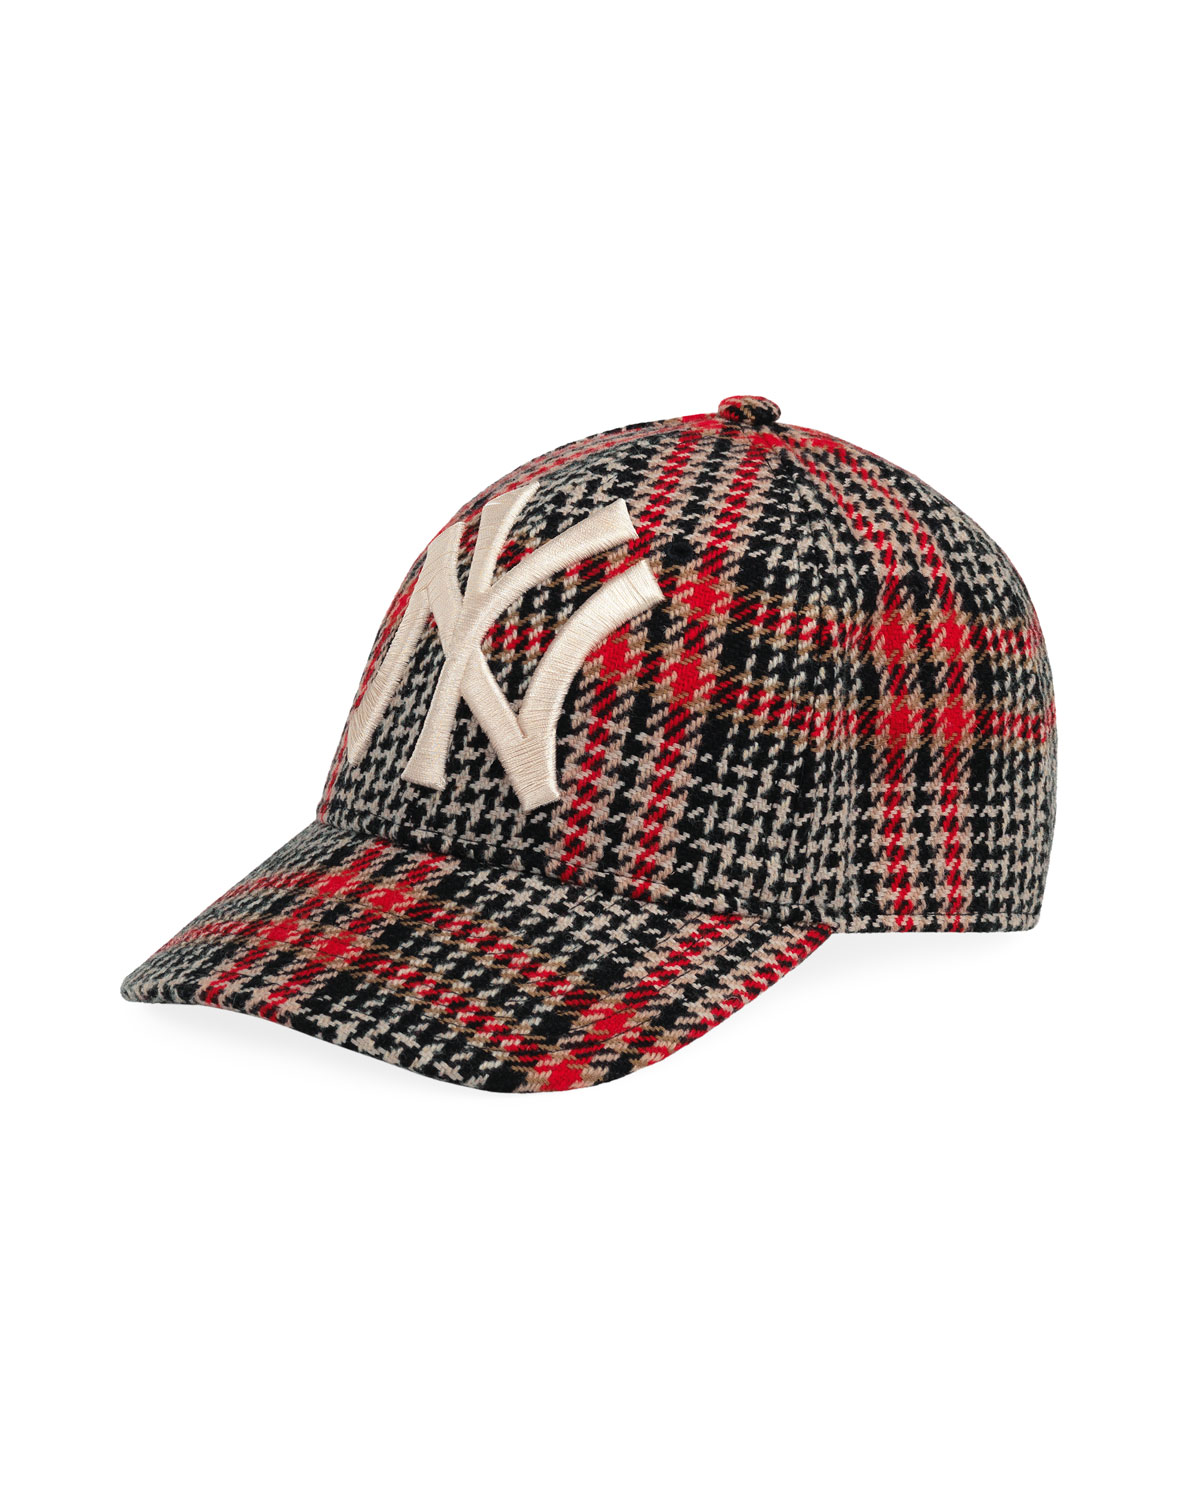 Gucci Men s Houndstooth Baseball Cap with NY Yankees Applique ... 5831f8443b1